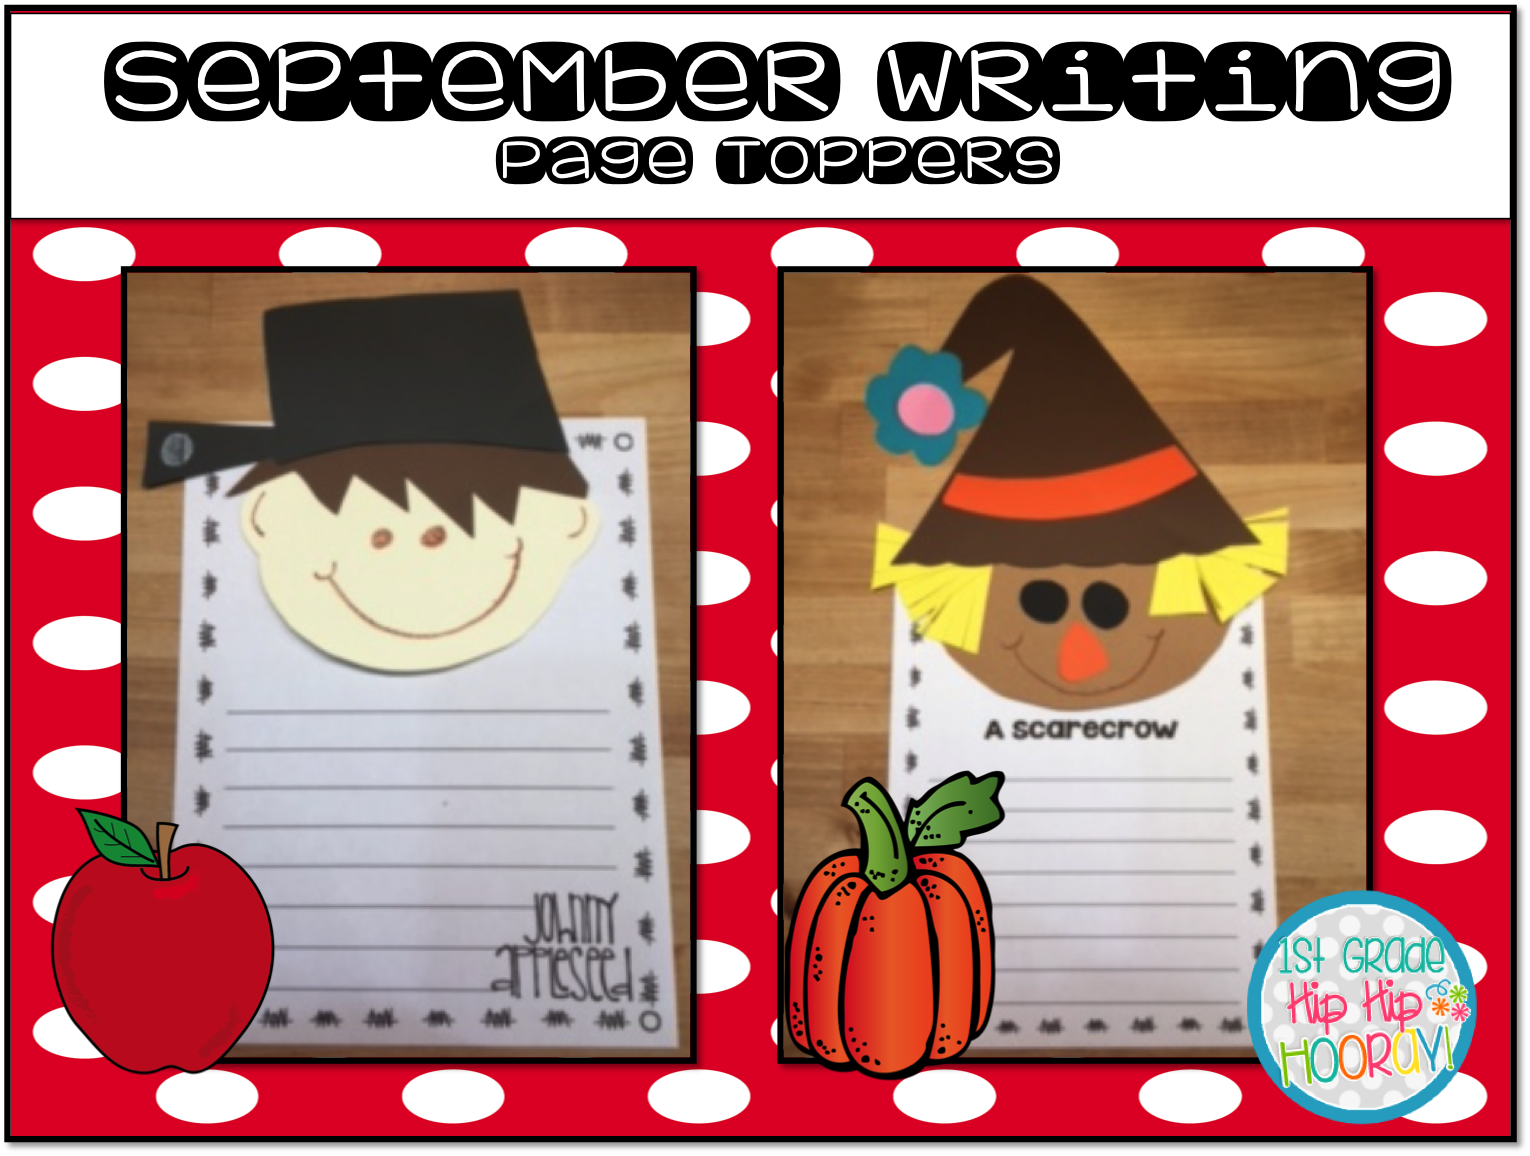 1st Grade Hip Hip Hooray September Writing With Page Toppers